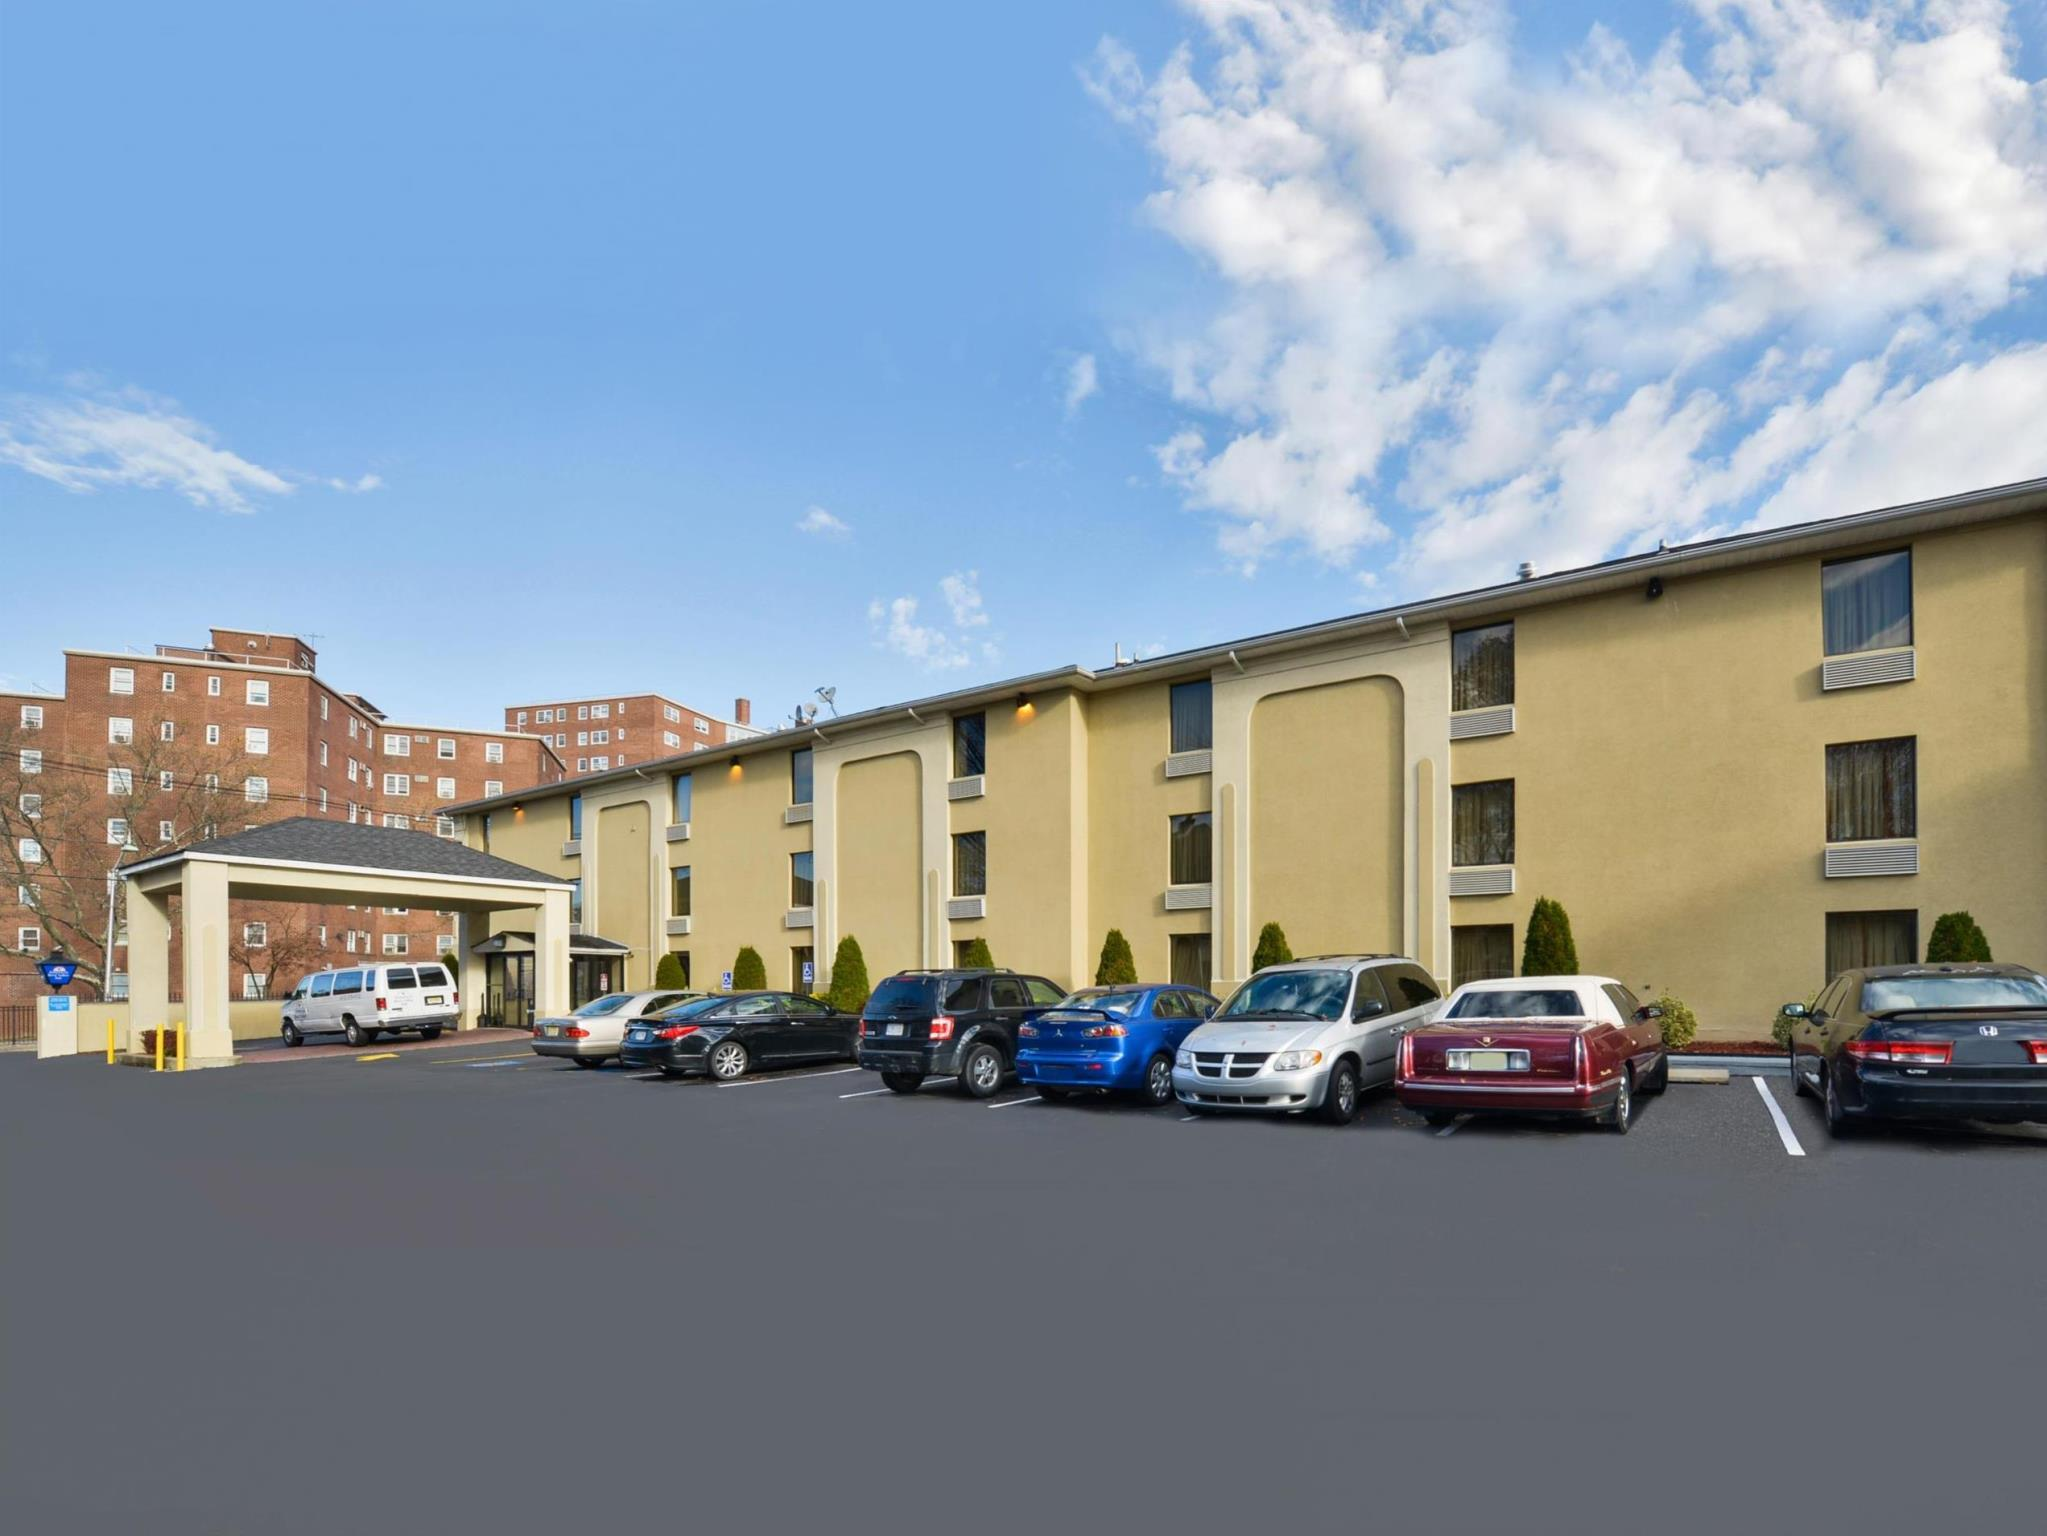 Americas Best Value Inn @ Newark Airport - Irvington, NJ, Essex